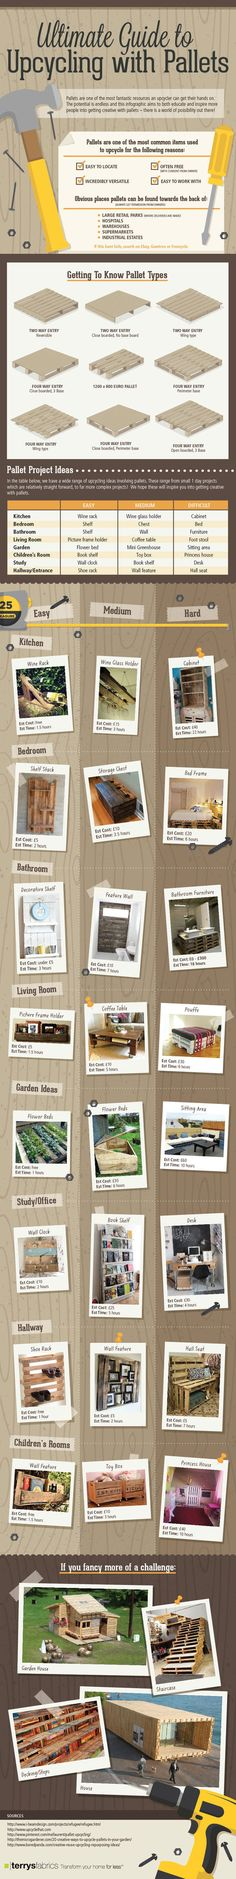 ultimate-guide-to-upcycling-with-pallets1.jpg